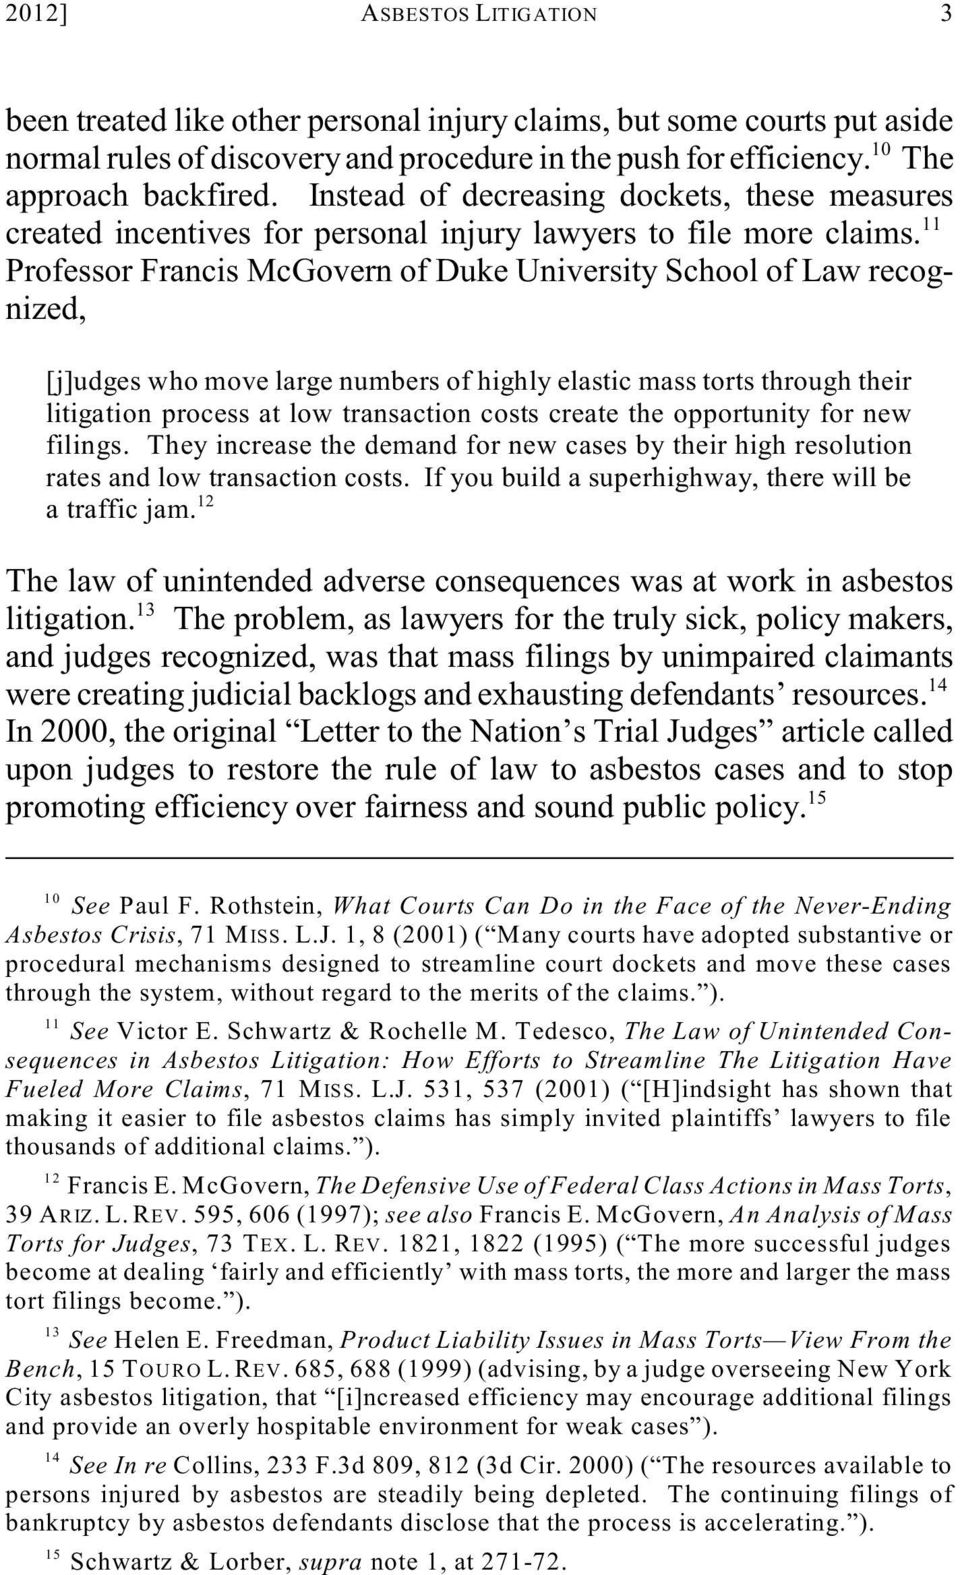 Professor Francis McGovern of Duke University School of Law recognized, [j]udges who move large numbers of highly elastic mass torts through their litigation process at low transaction costs create